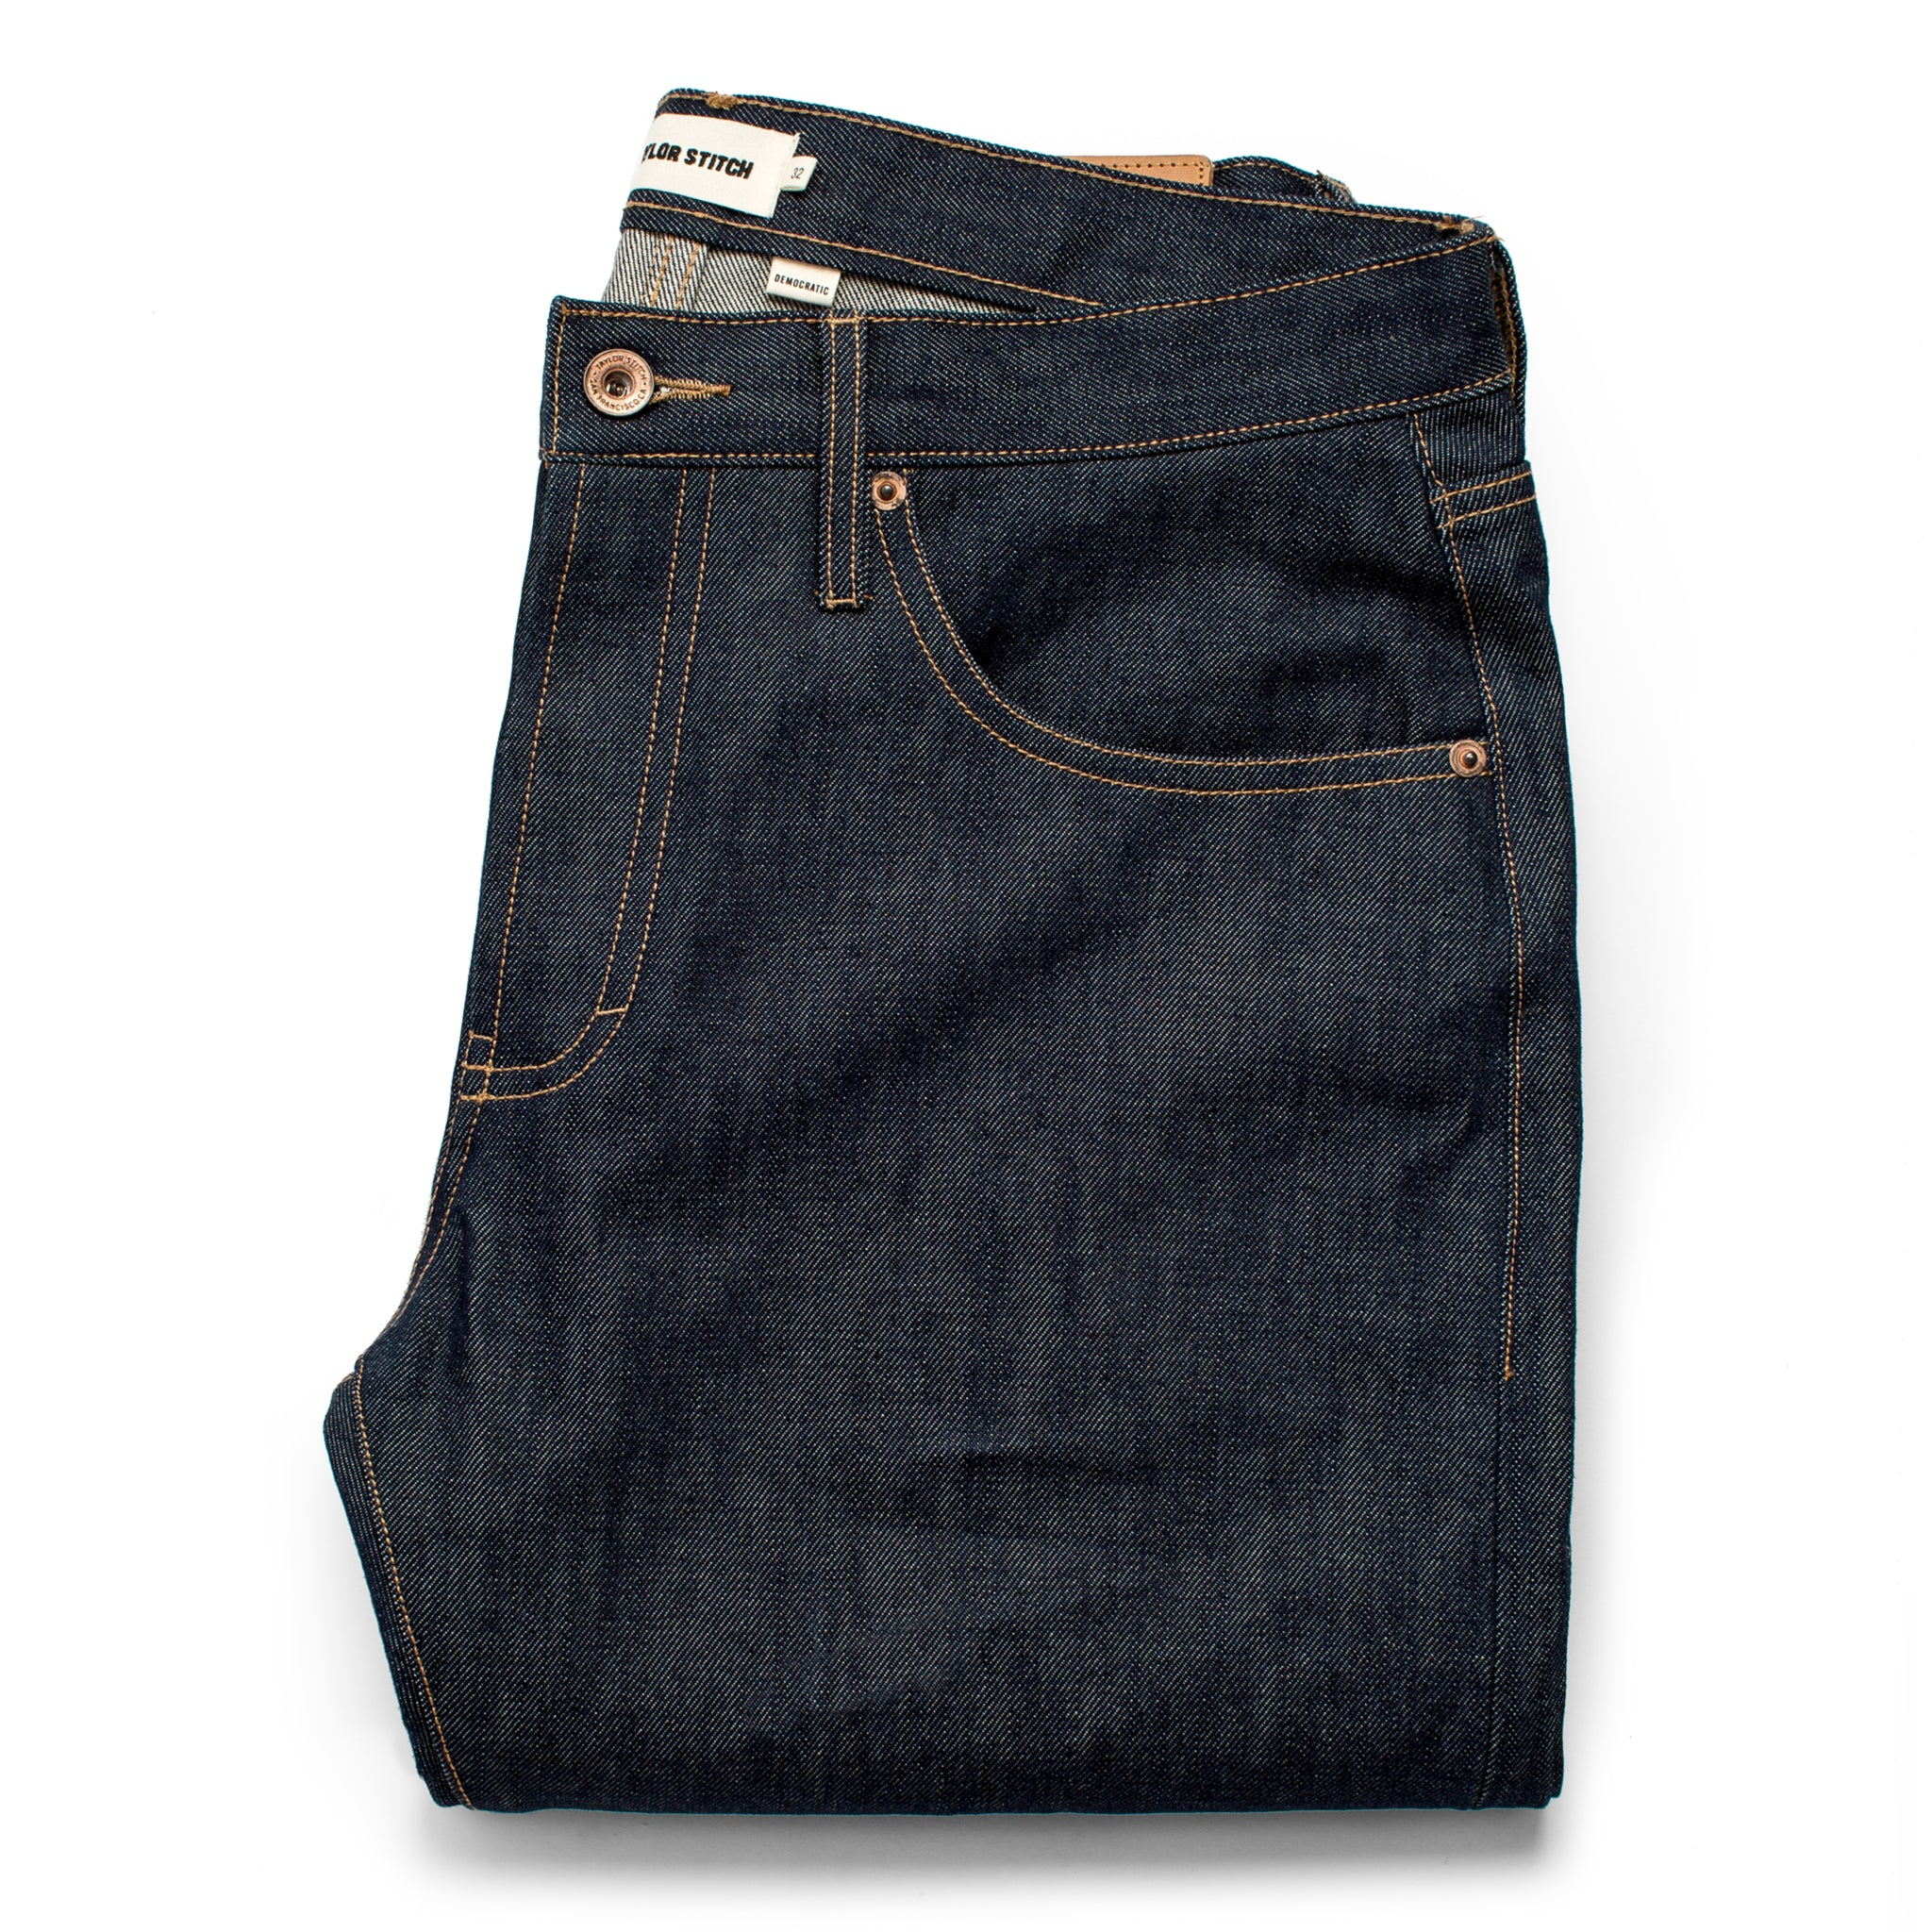 Taylor Stitch Selvage Jeans